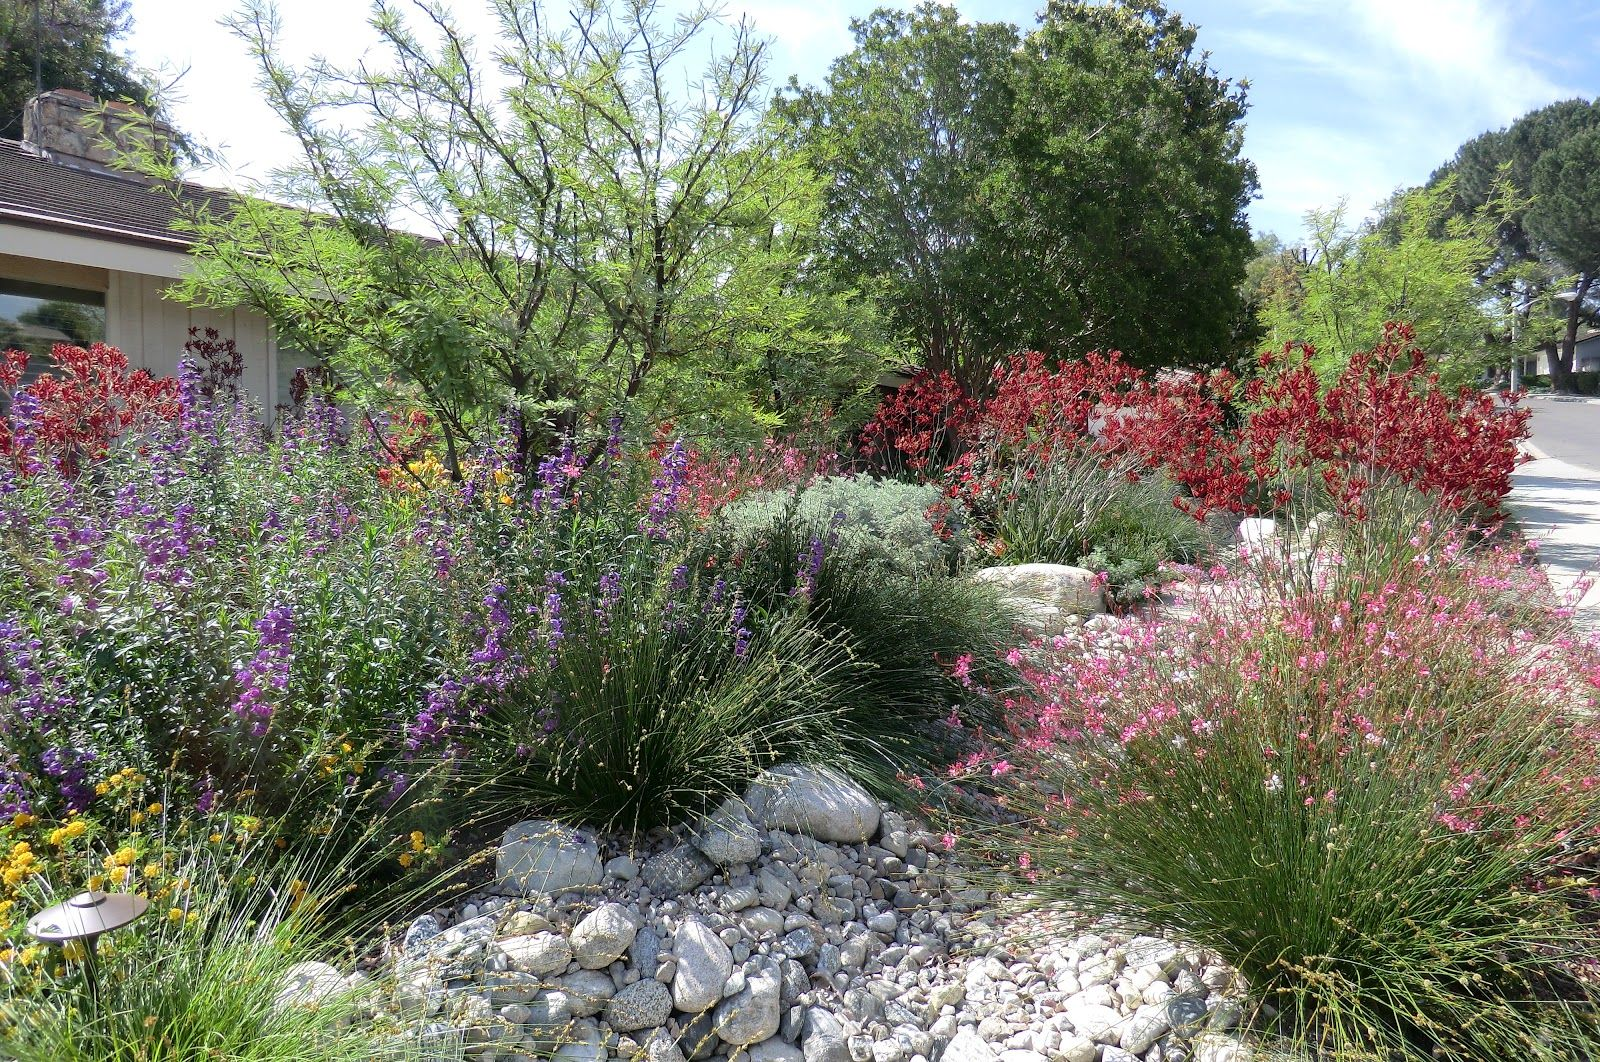 California Native Plants, California, Plants, Native, Gardening